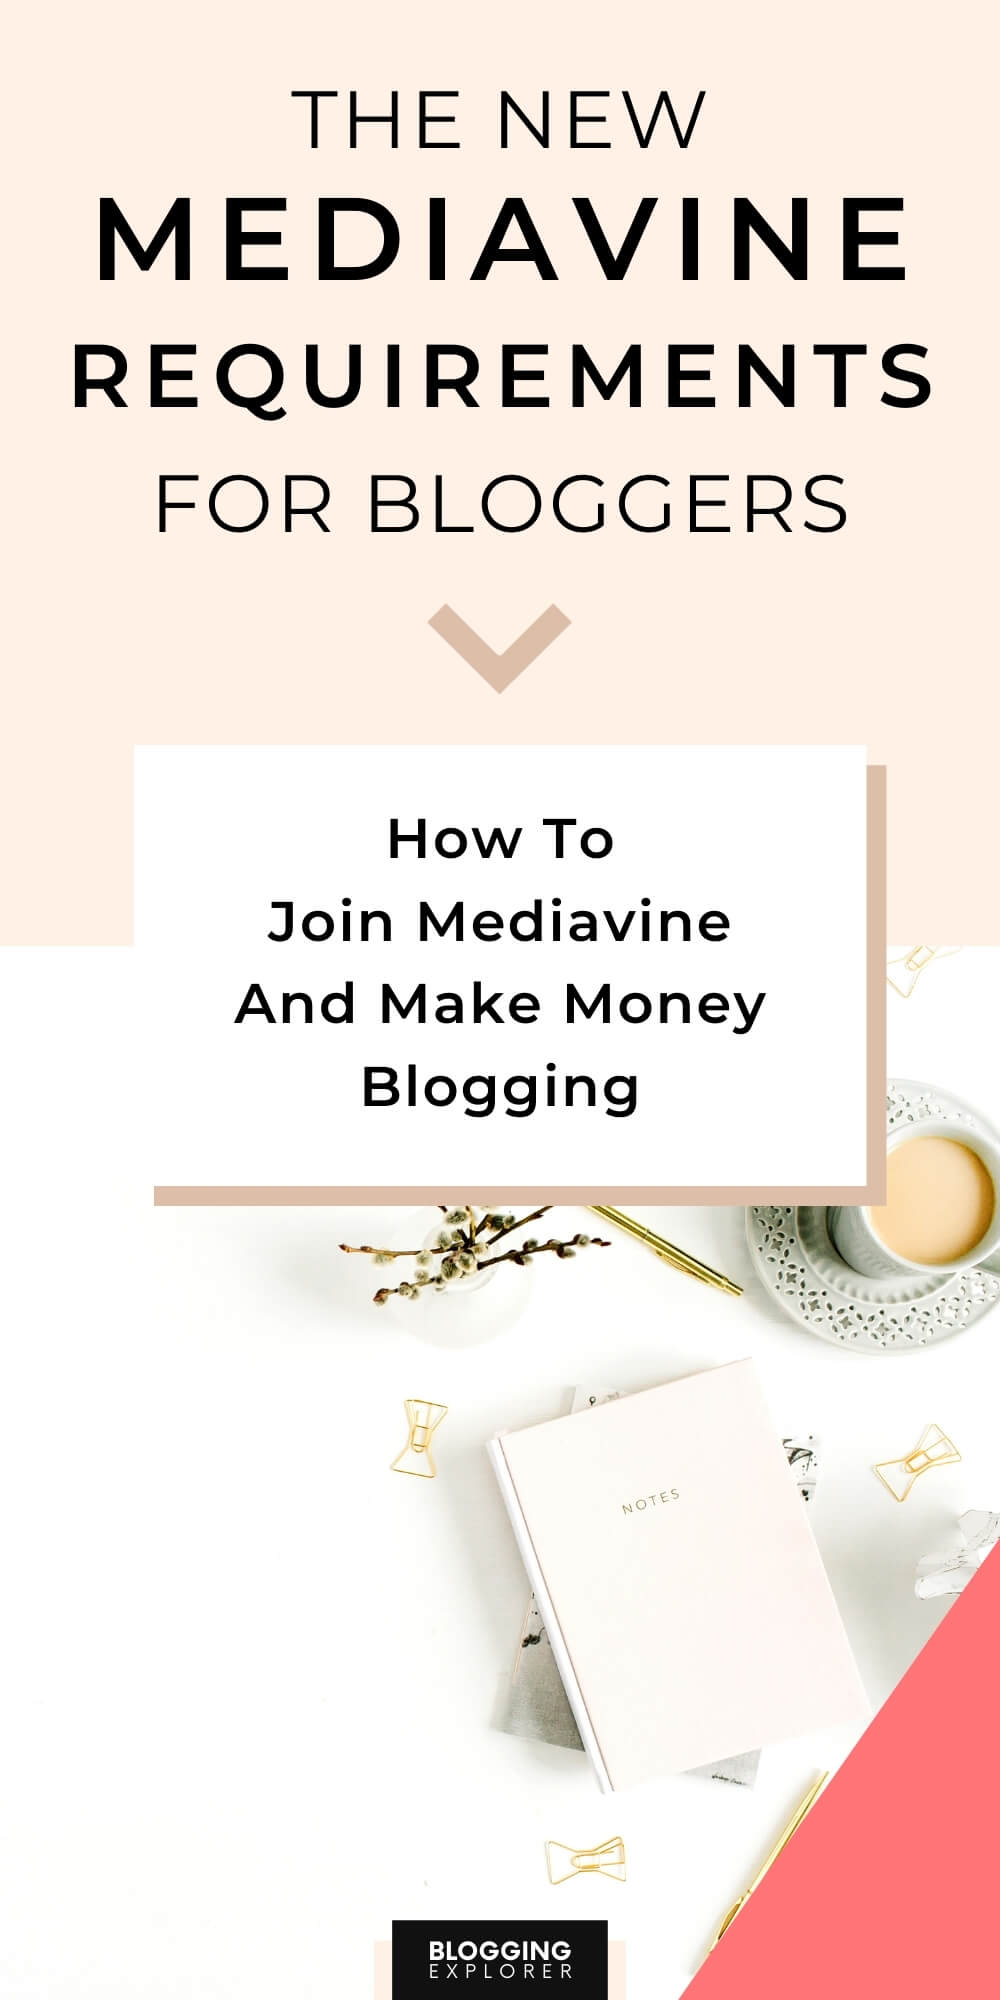 Mediavine requirements for bloggers and publishers - How to join Mediavine and make money blogging